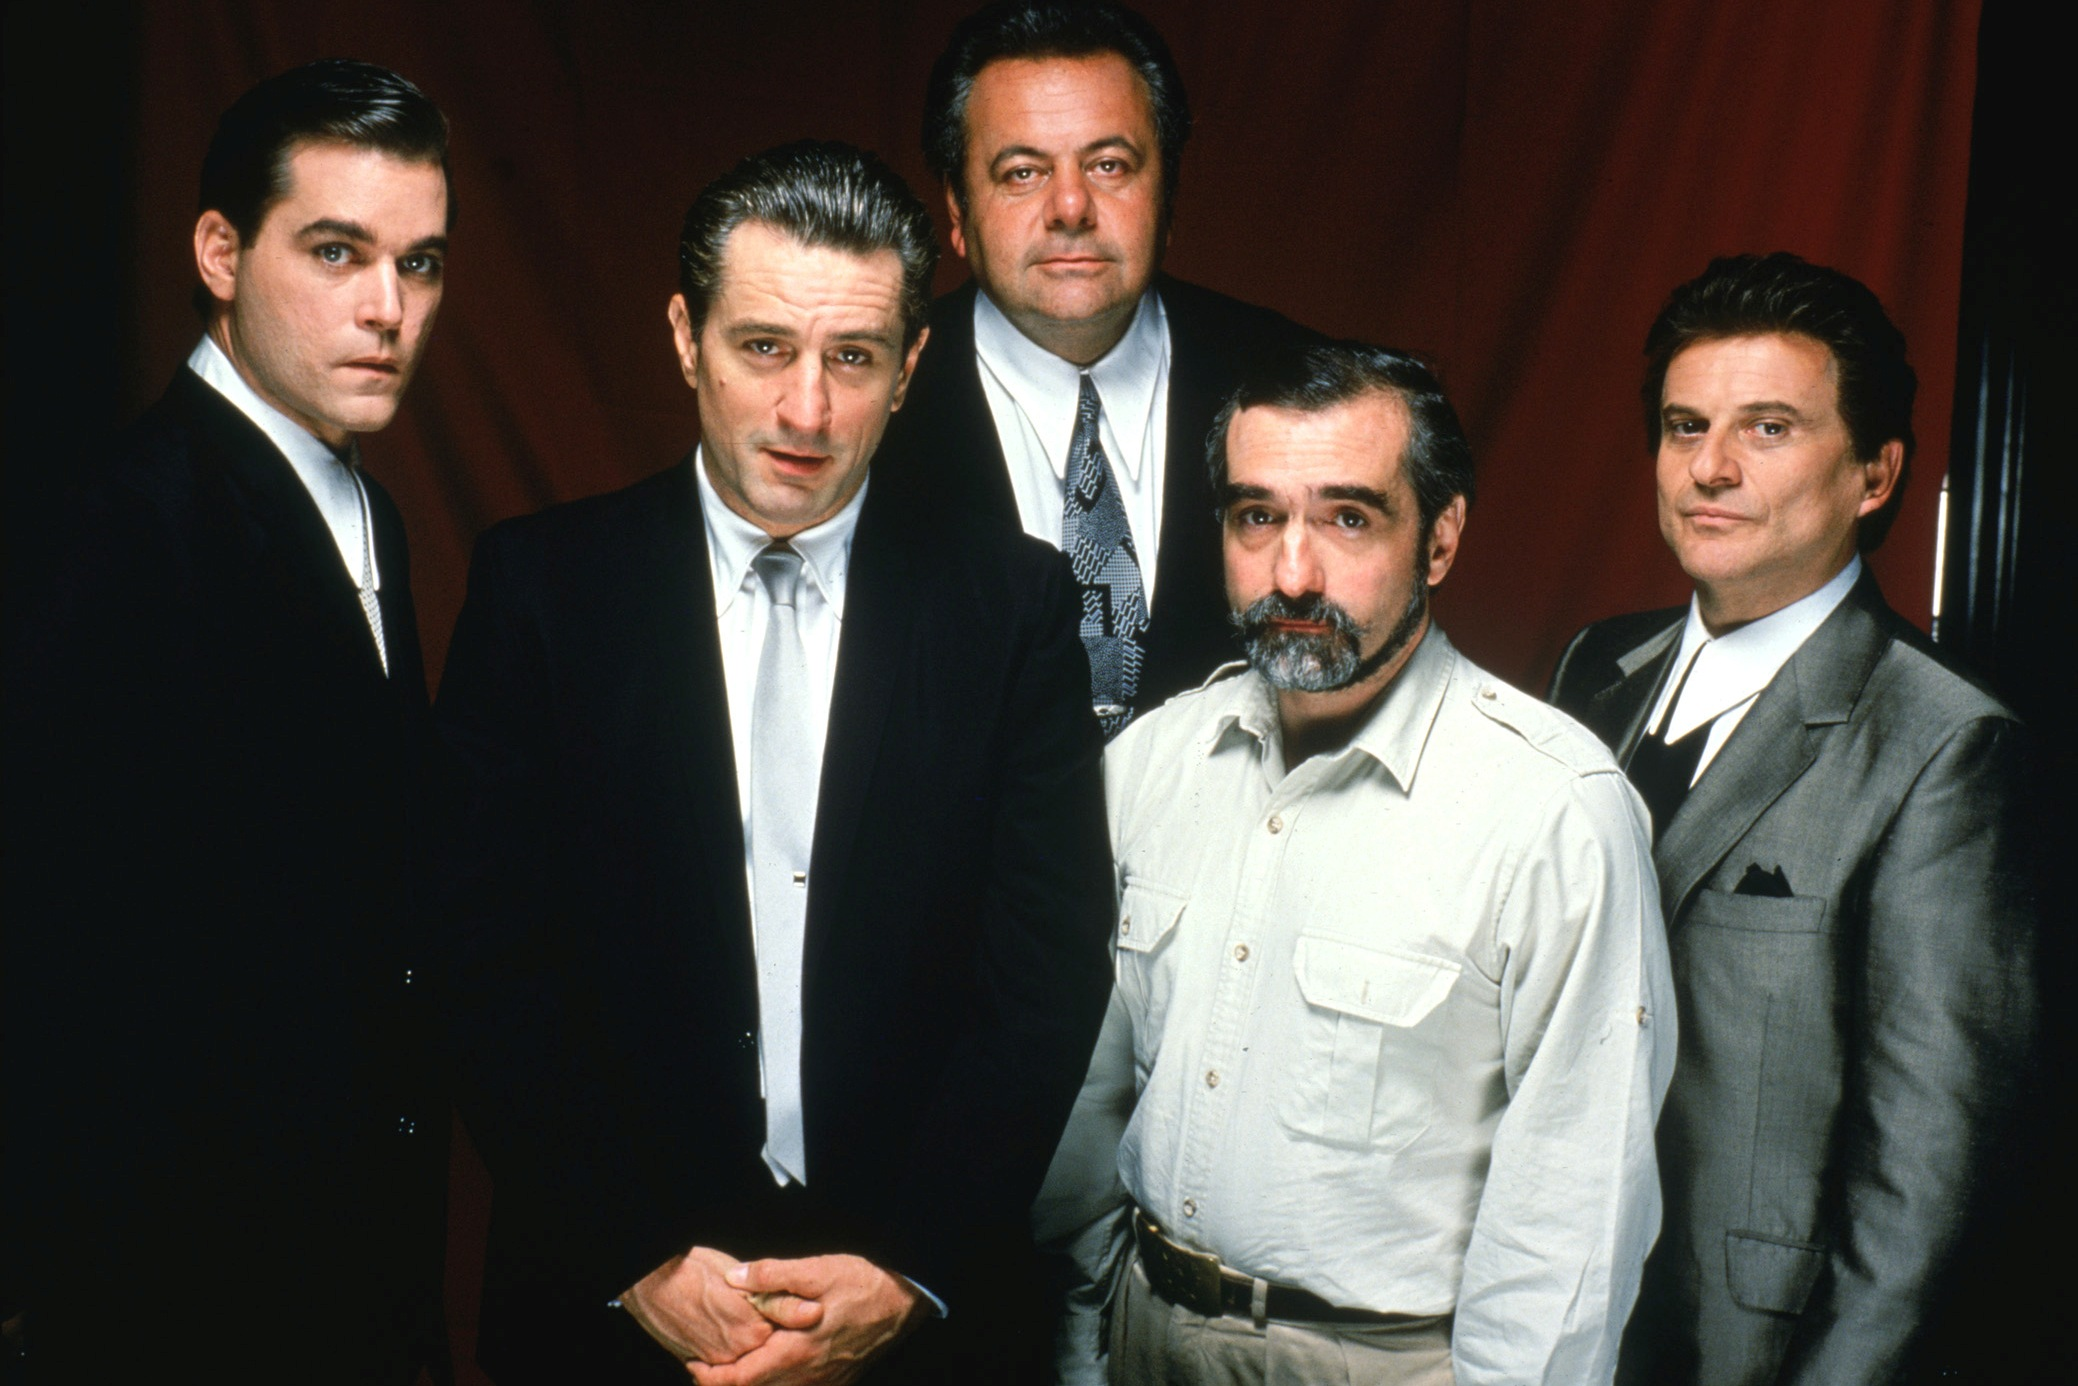 Liotta Robert De Niro Paul Sorvino Joe Pesci Martin Scorsese GOODFELLAS